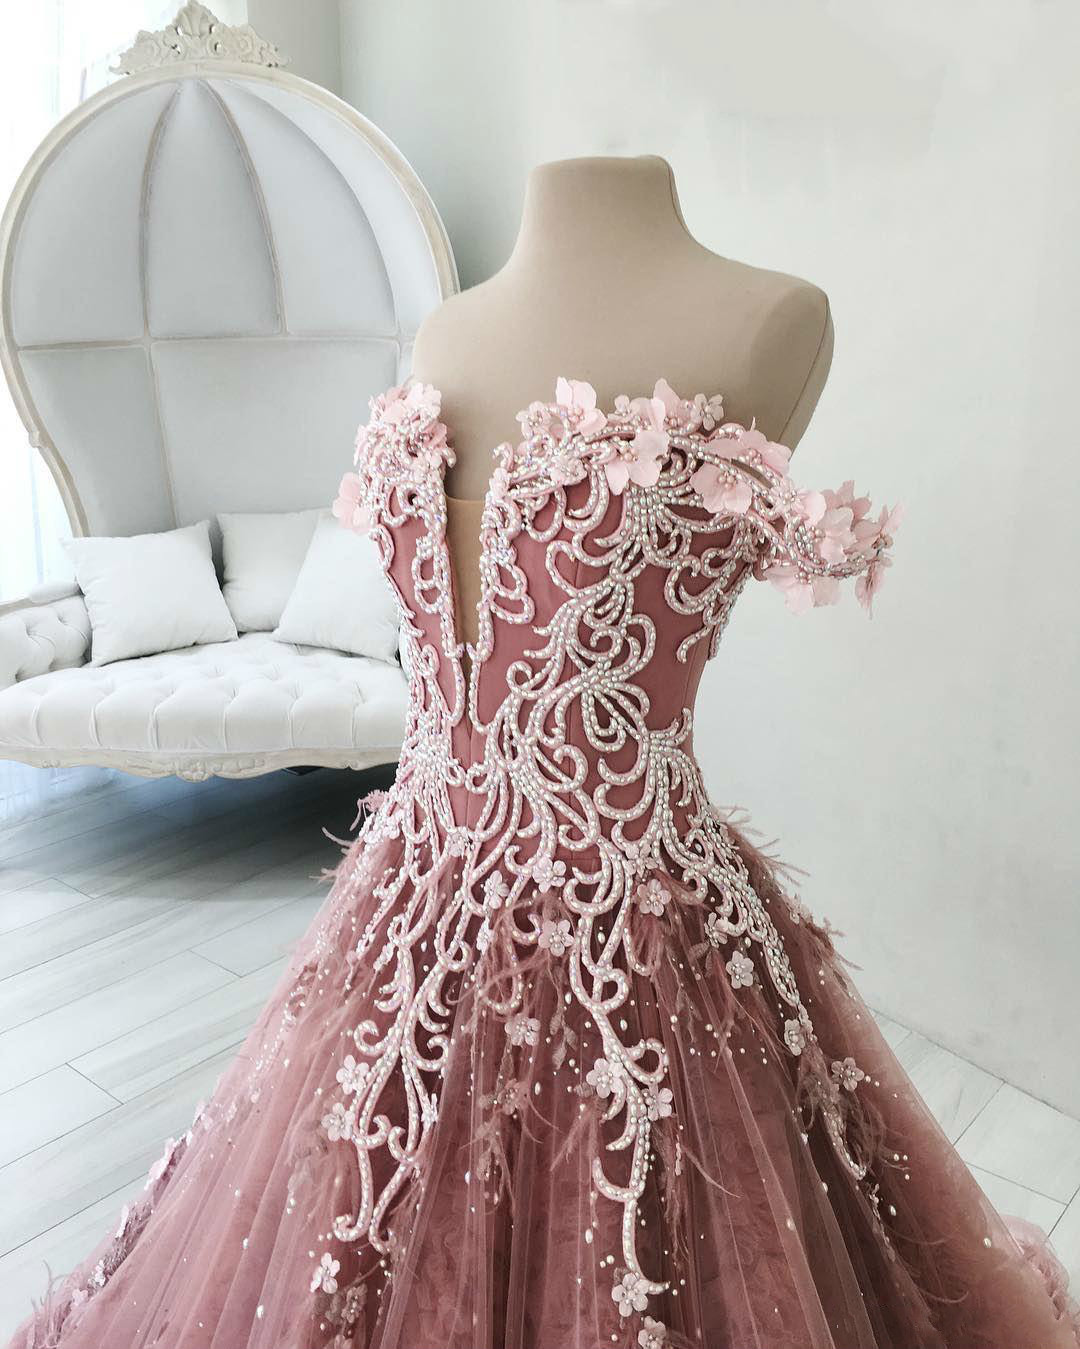 Image 4 - BGW 2241ht Butterfly Flowers Appliques Ball Gown Masquerade Quinceanera Dresses Off Shoulder Backless Floor Length Pageant GownsQuinceanera Dresses   -